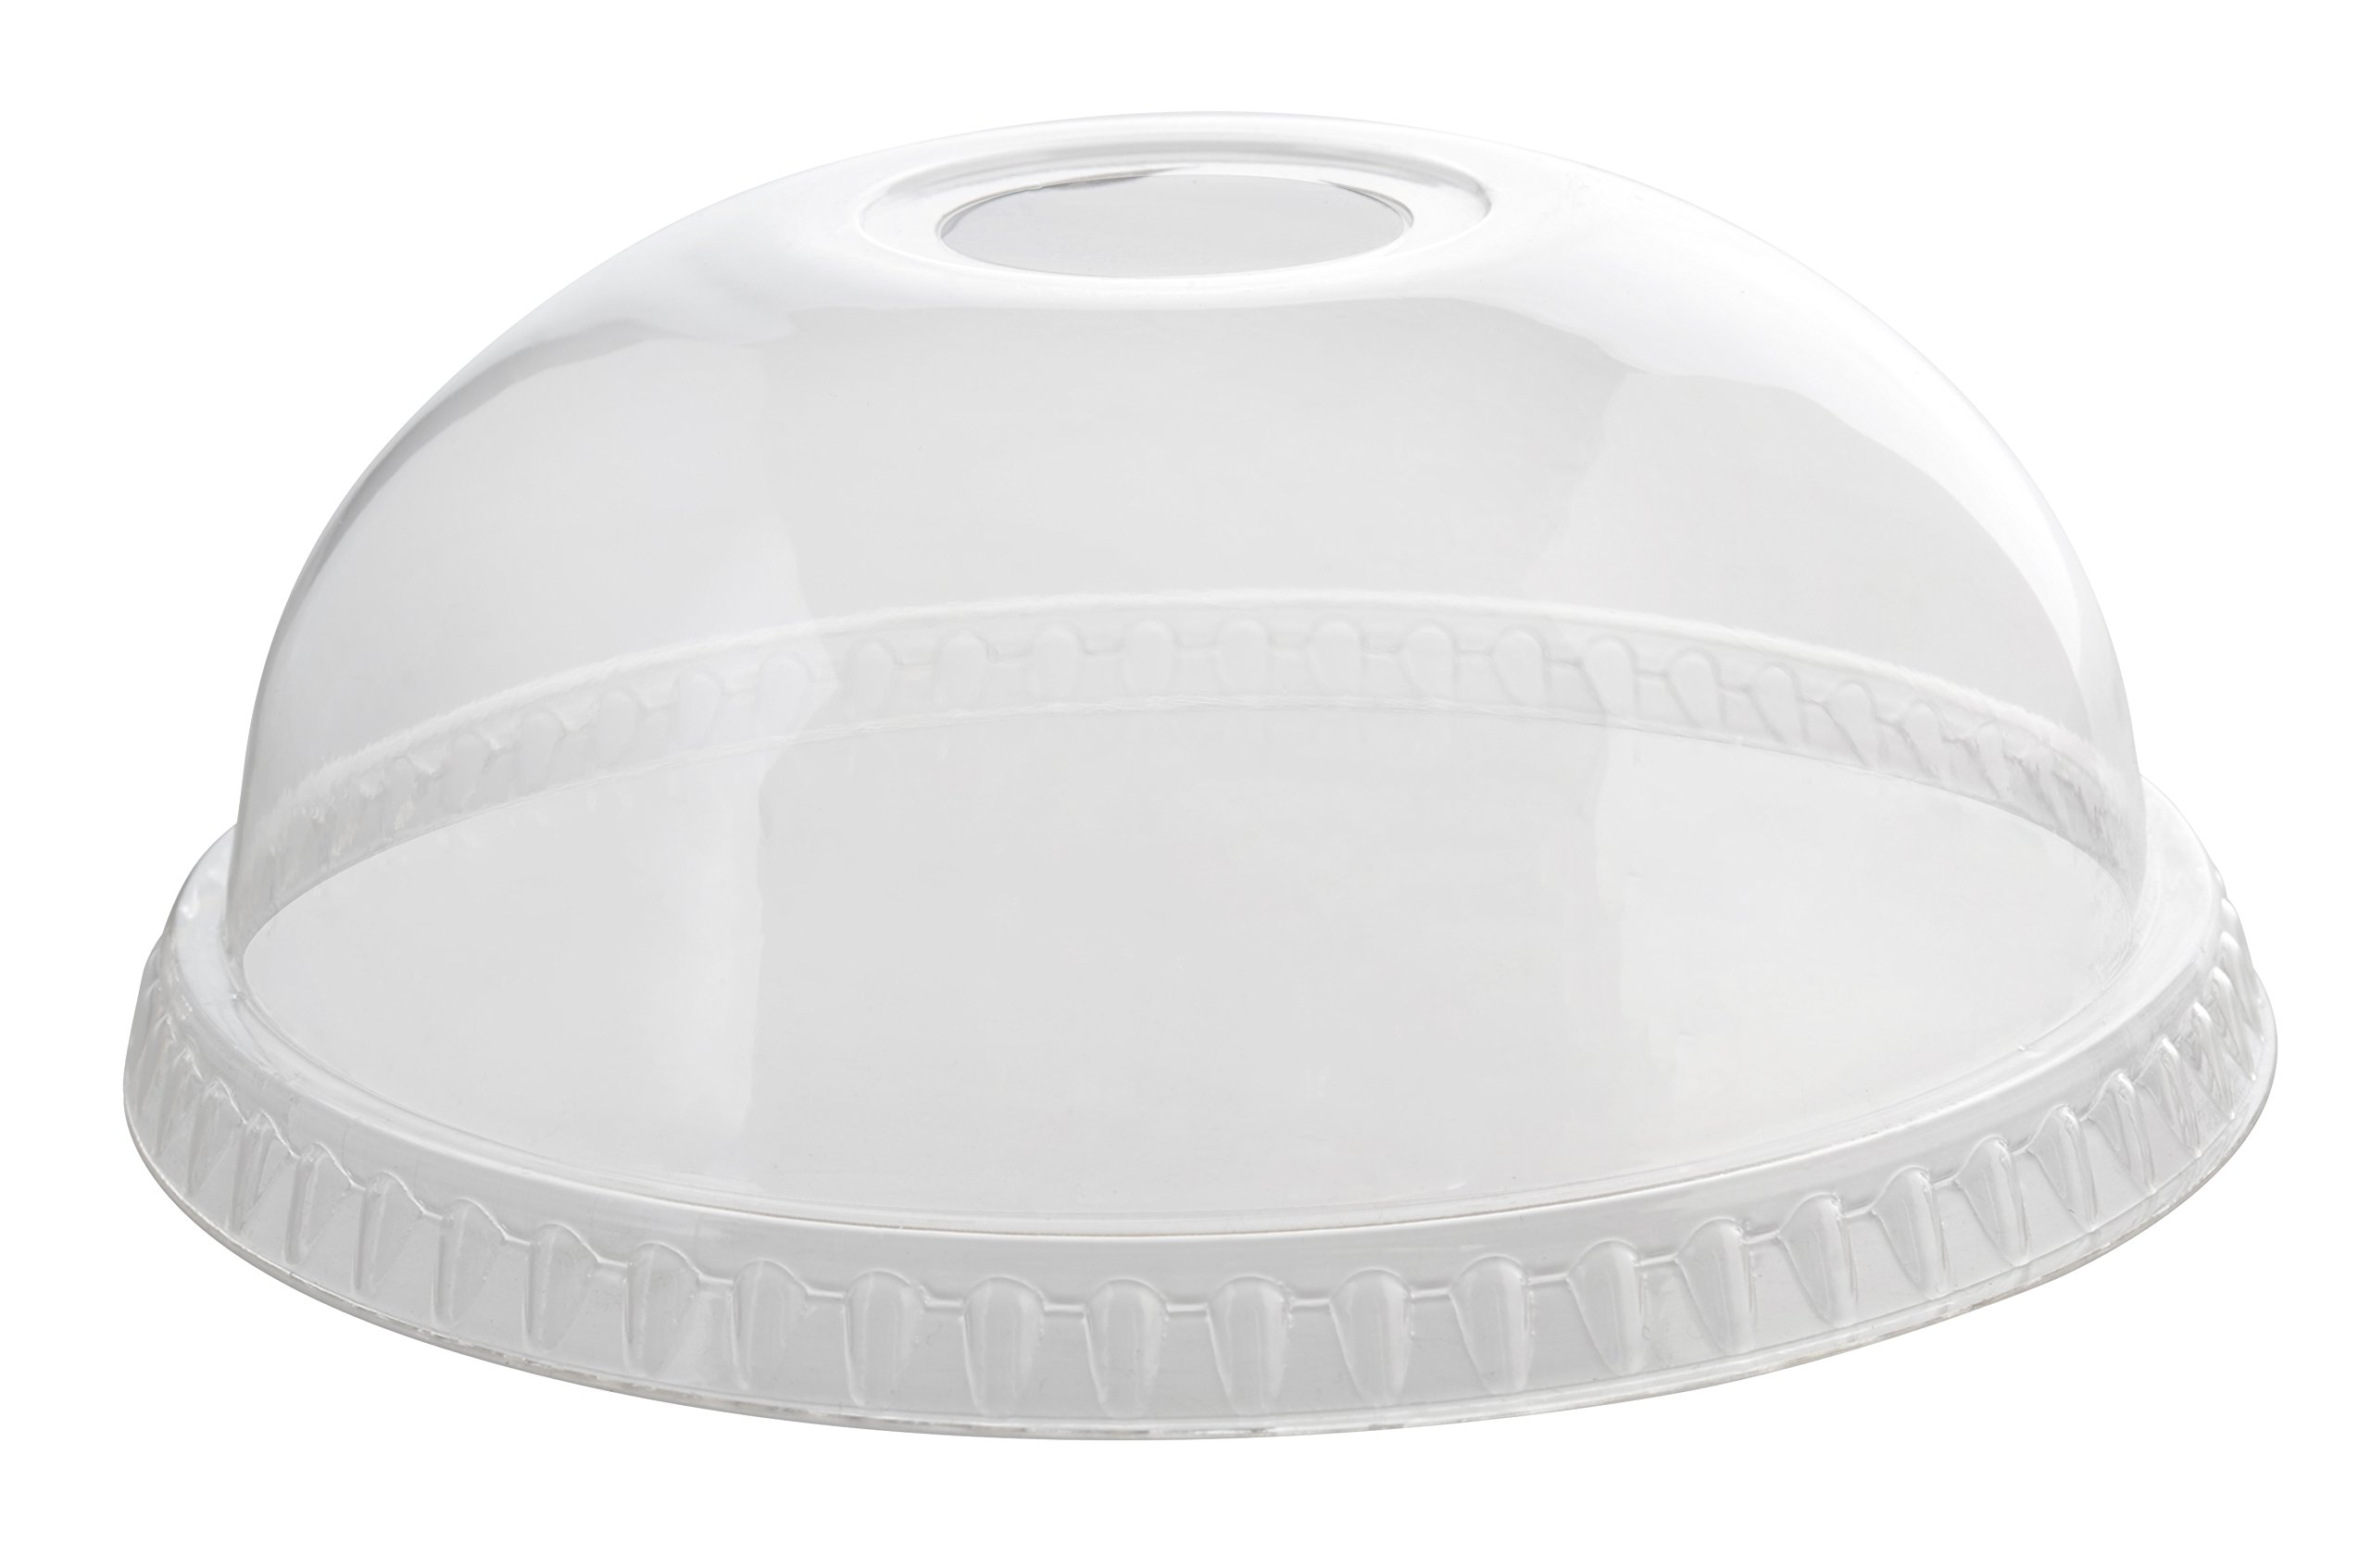 Fineline 31115DLH Dome Lid, W/Hole, 115 mm - 1000/Cs (100 x 10), Clear